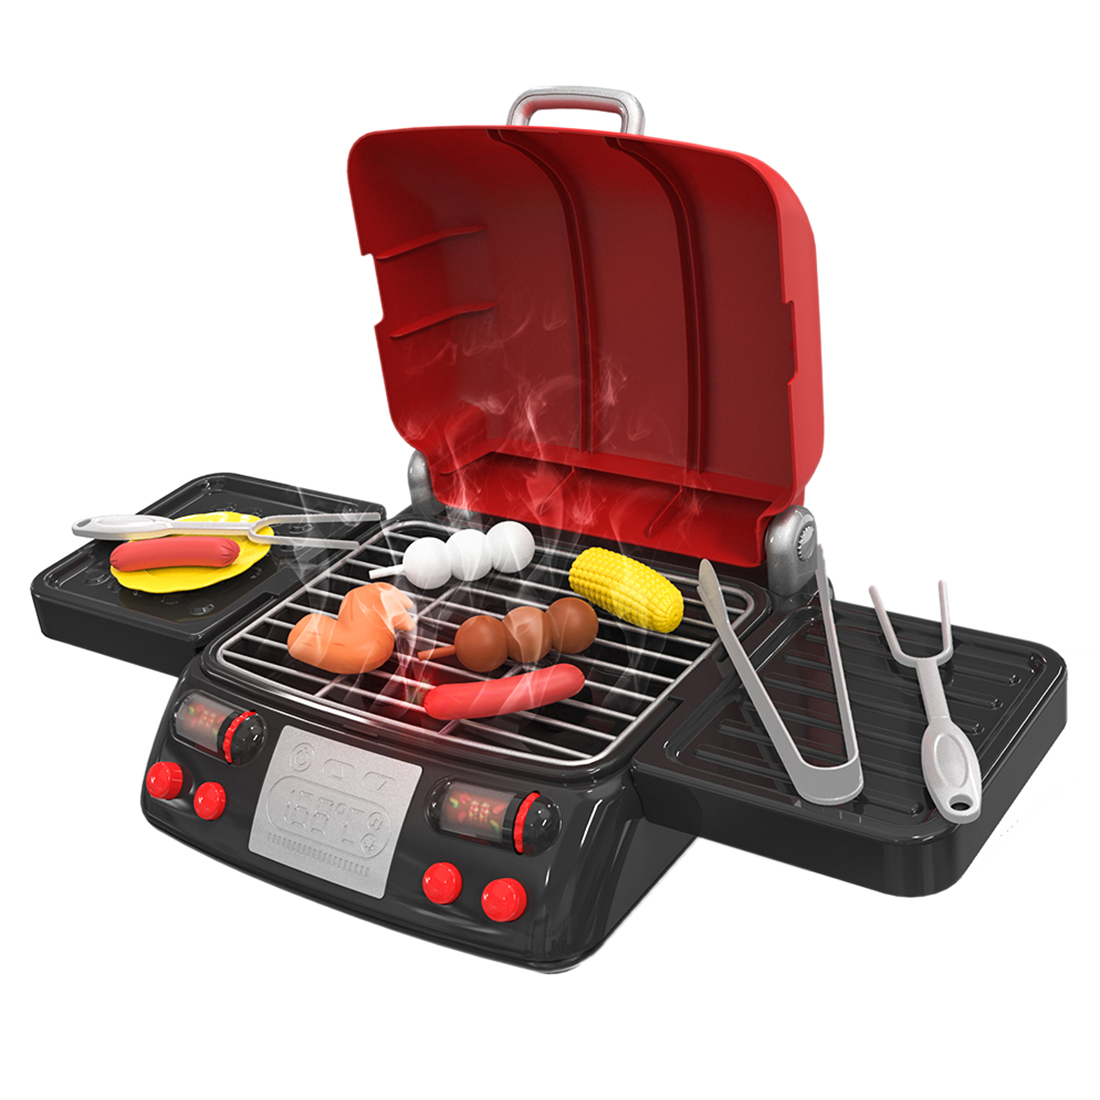 US $22.44 32% OFF|Children Kitchen Toy Simulation Electric BBQ Grill  Sausage Chicken Wing Tomato Sauce Cooking Pretend Play Toys Boys Girls  Gift-in ...